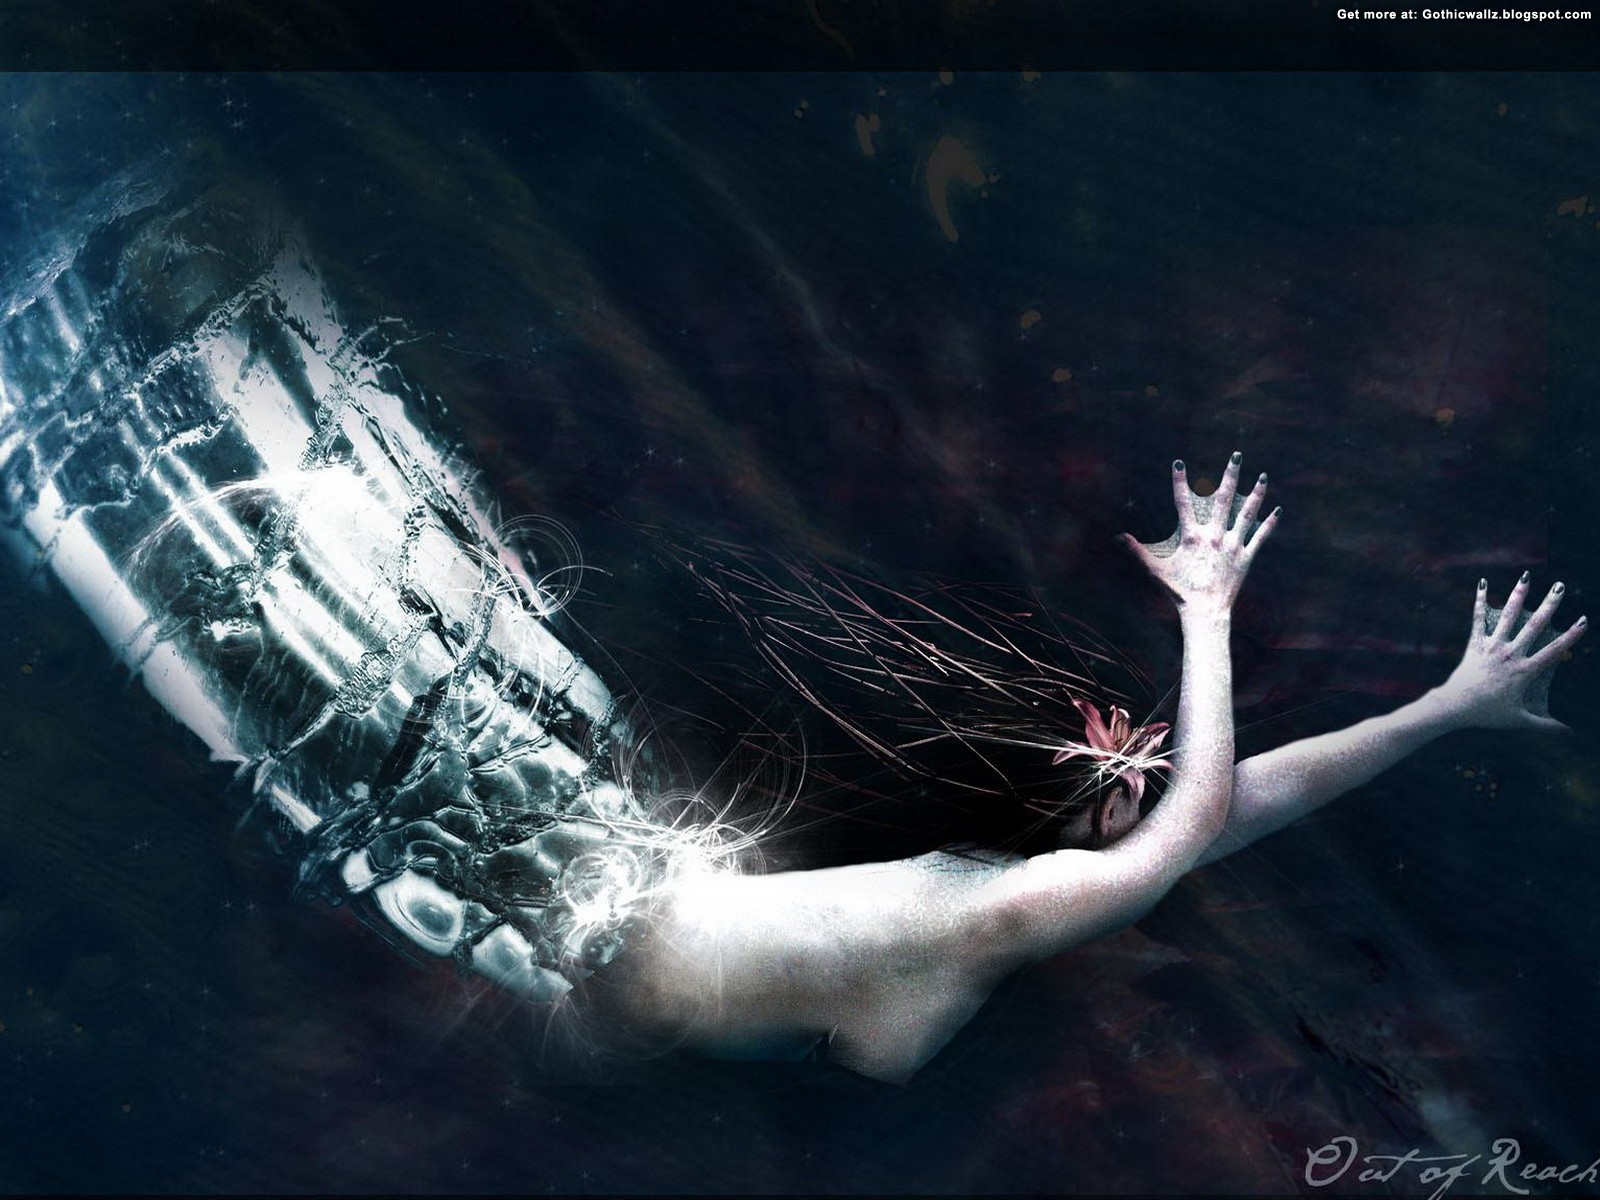 Out of Reach | Gothic Wallpaper Download